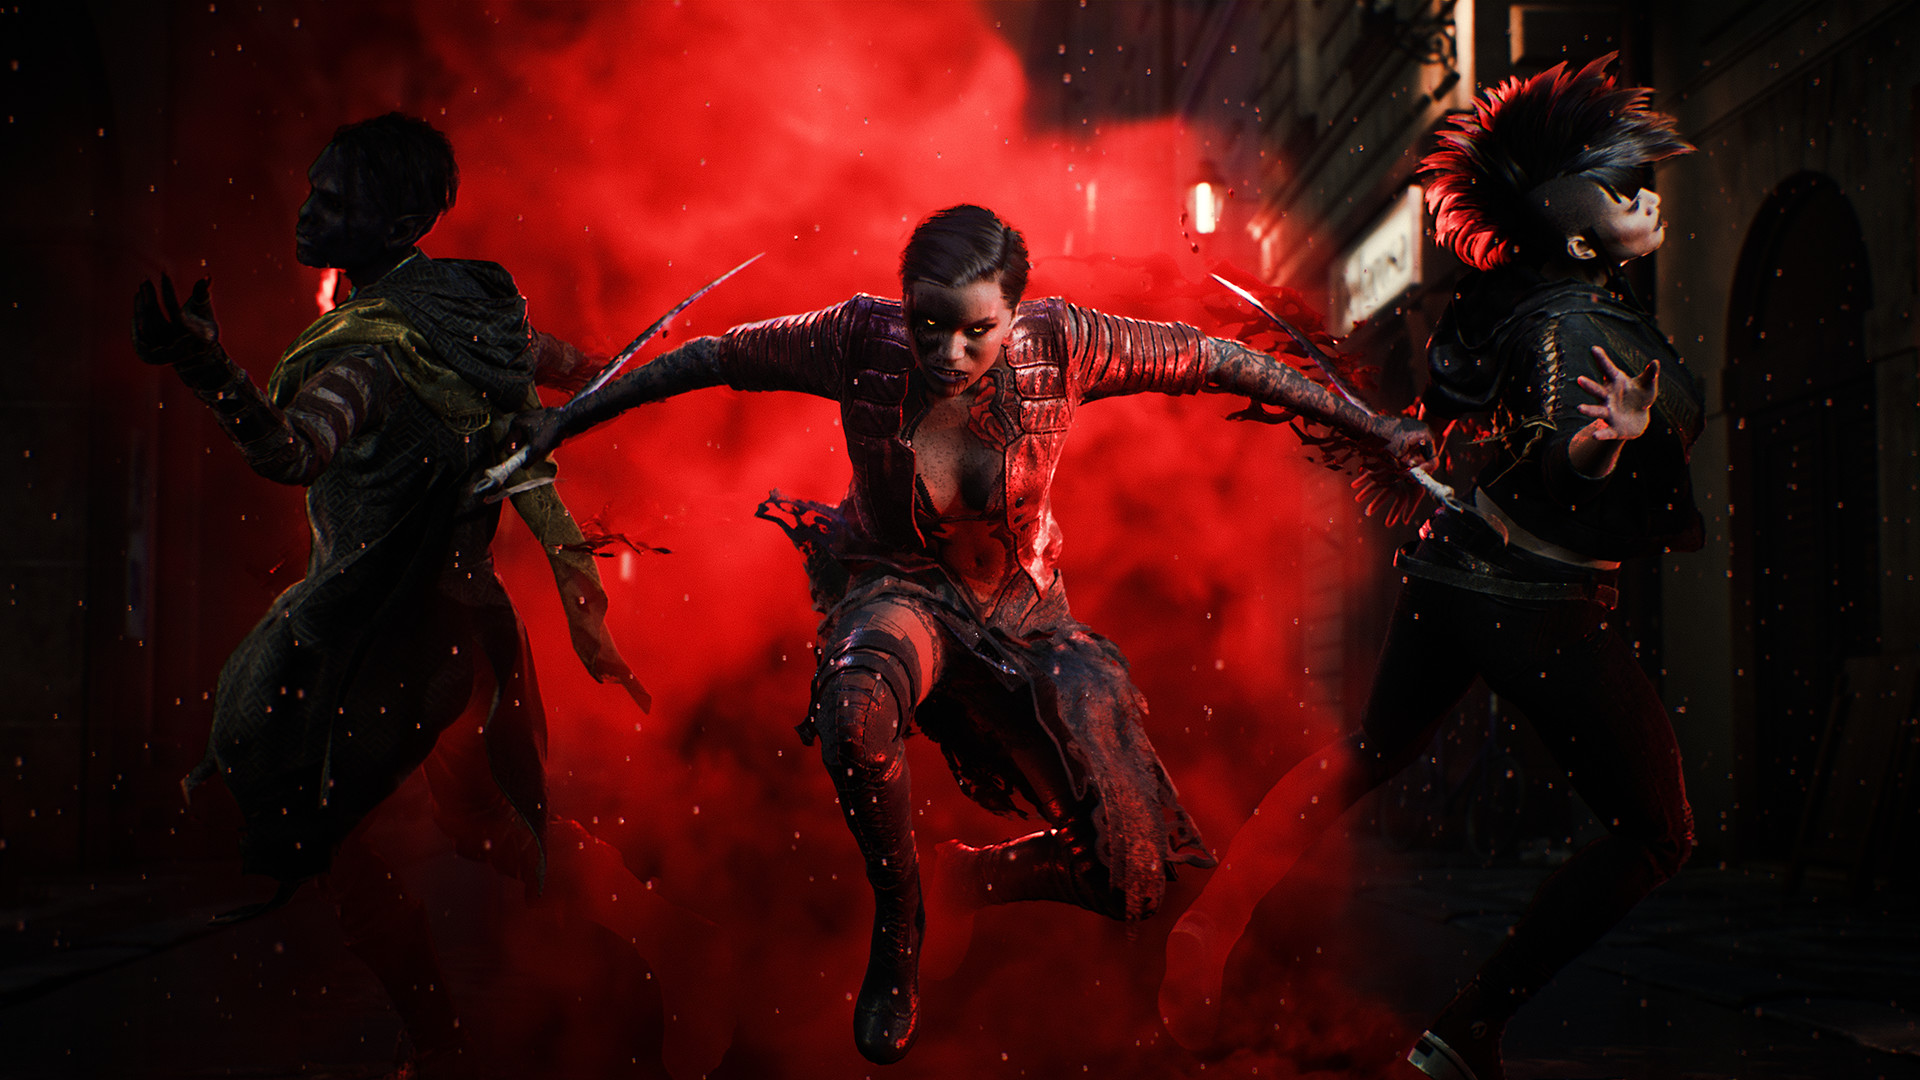 Bloodhunt is a new battle royale set in the world of Vampire: The Masquerade